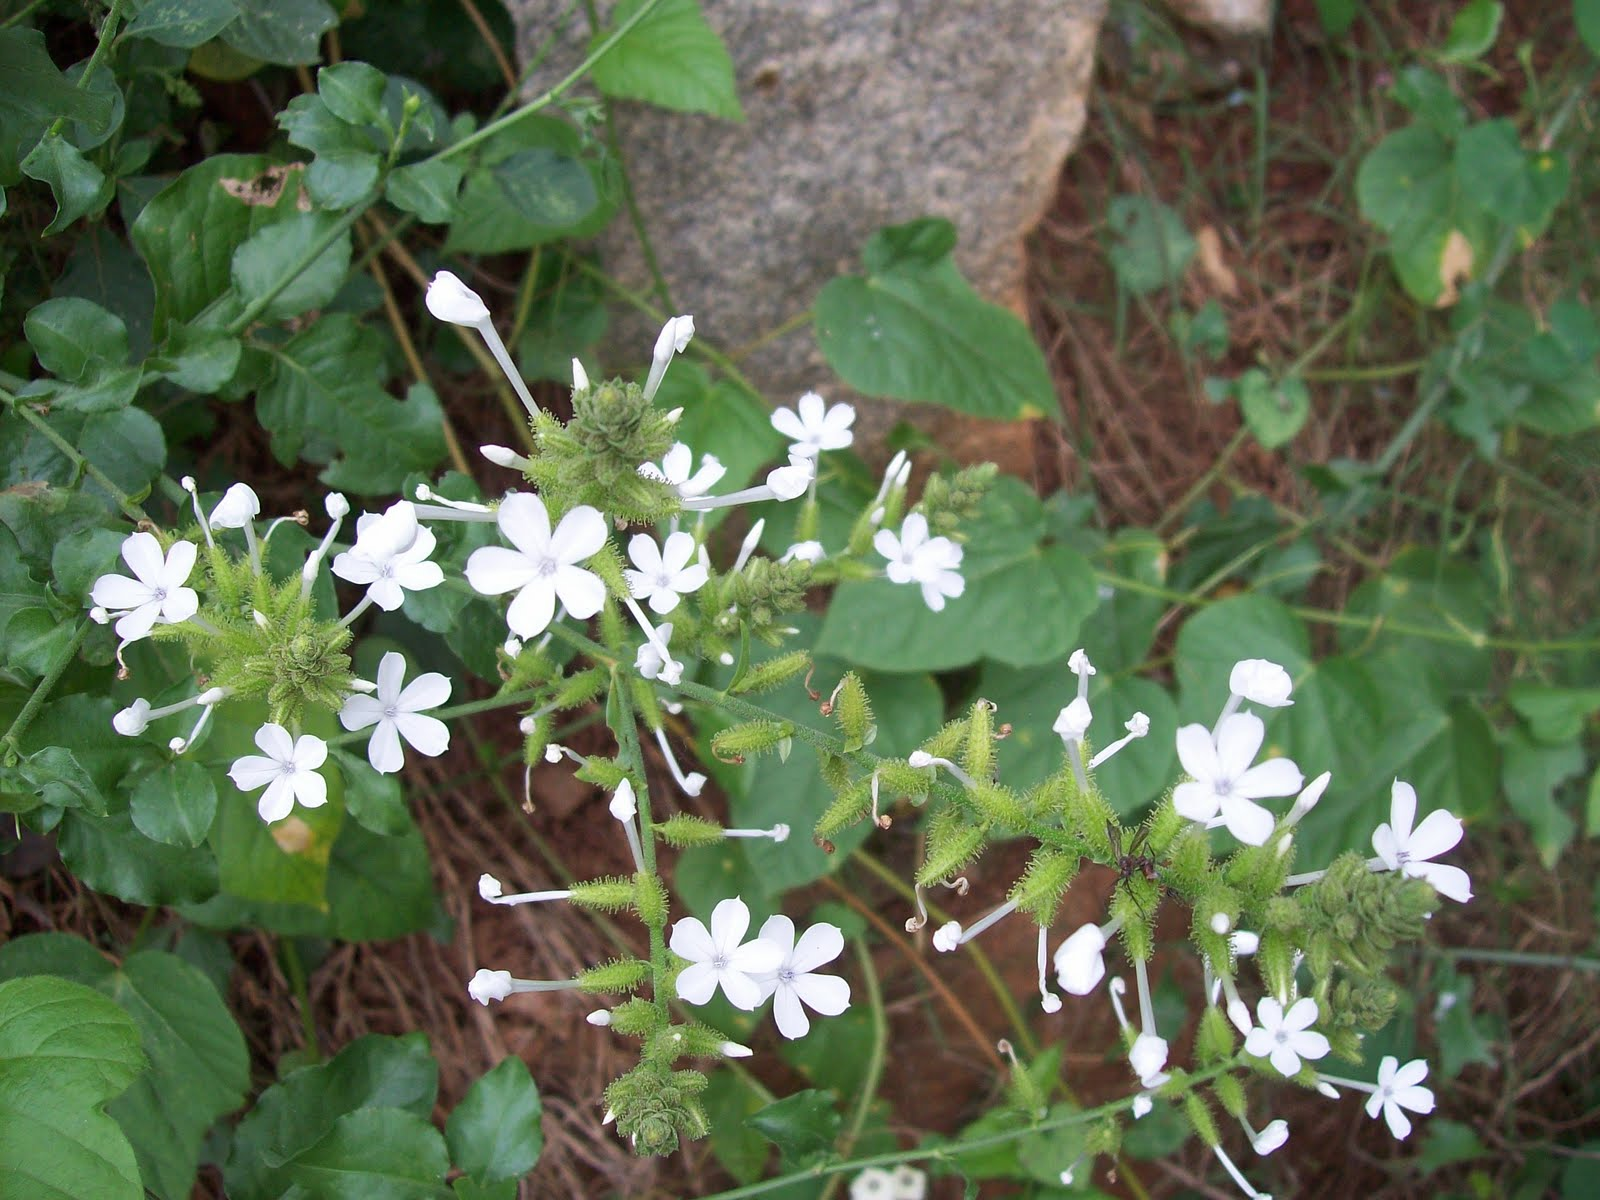 Gardentropics november 2010 this is the white plumbago called chitrak locally it is a wild flower native to peninsular india and sri lanka its botanical name is plumbago zeylanica mightylinksfo